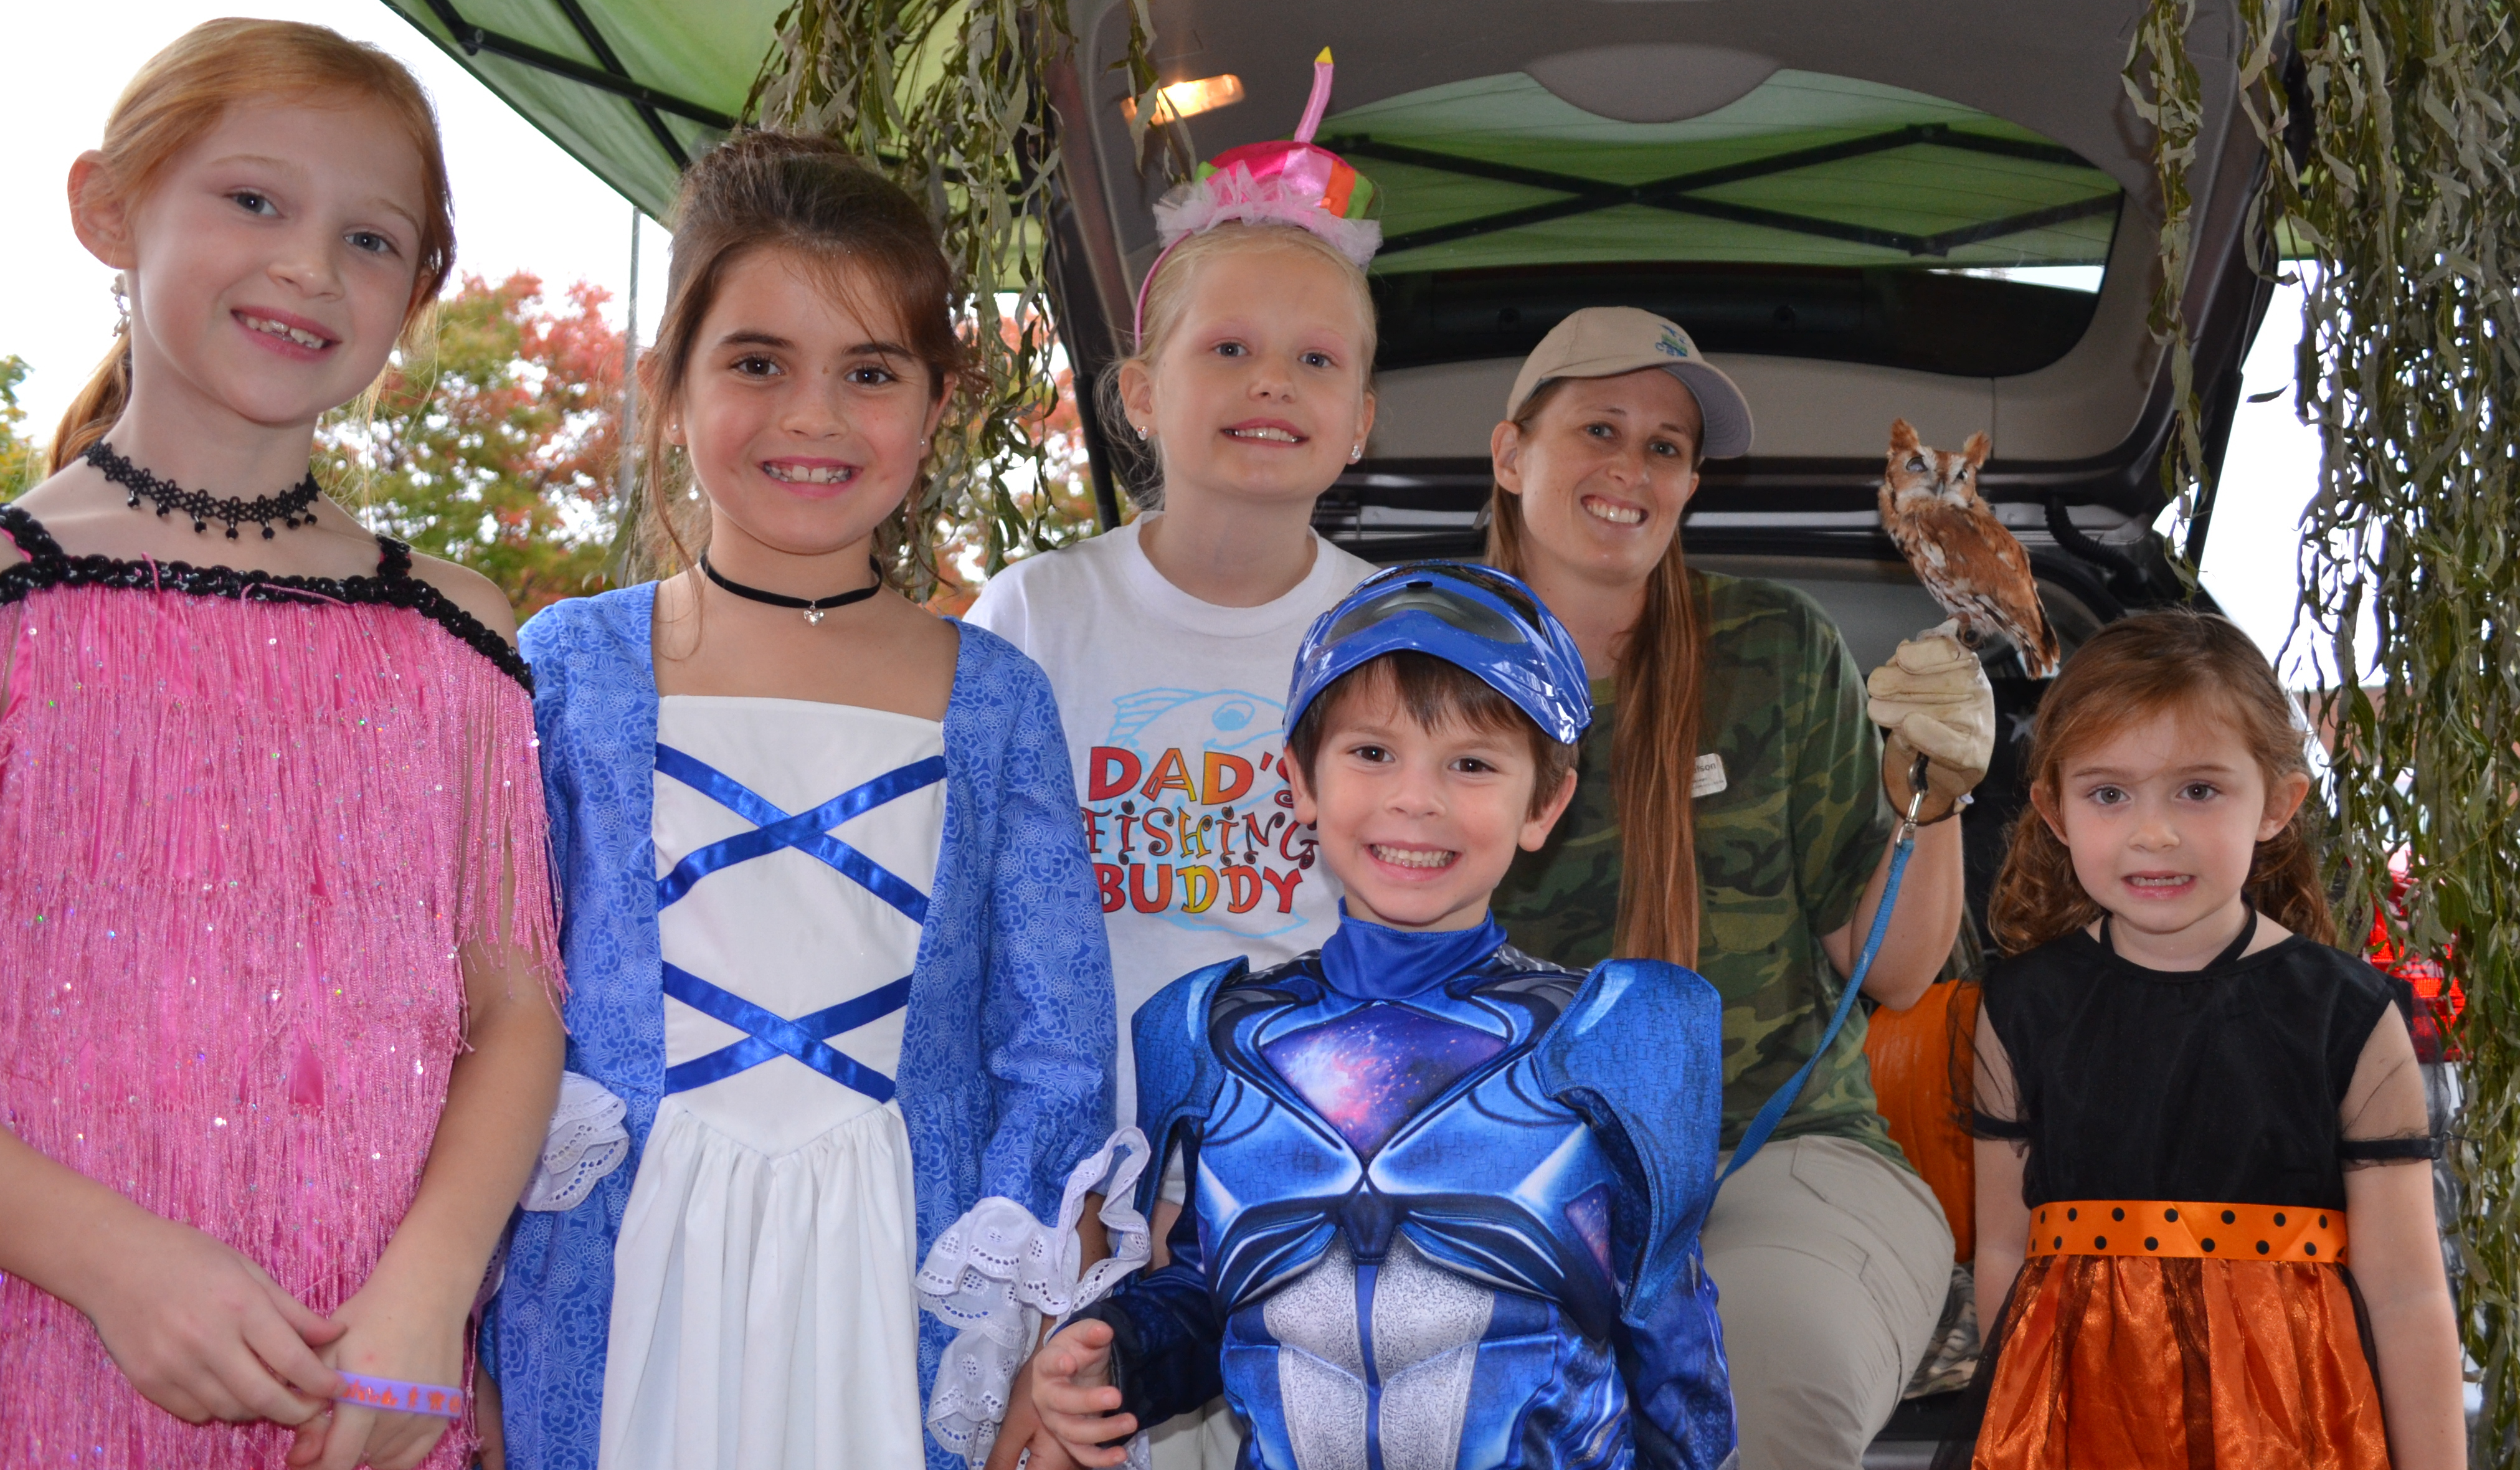 A group of children in costume